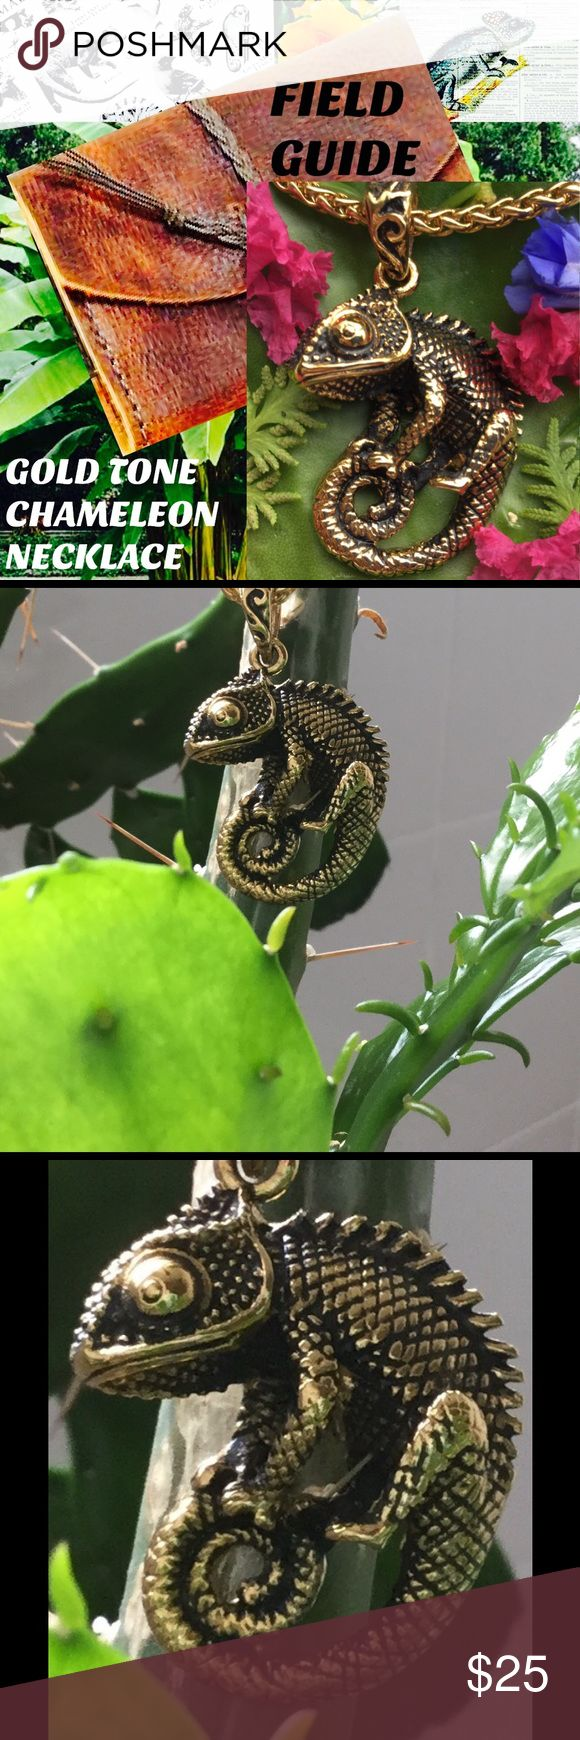 25 amazing chameleon pictures - Gold Plated Chameleon Lizard Necklace 20 2 Ext Nwt